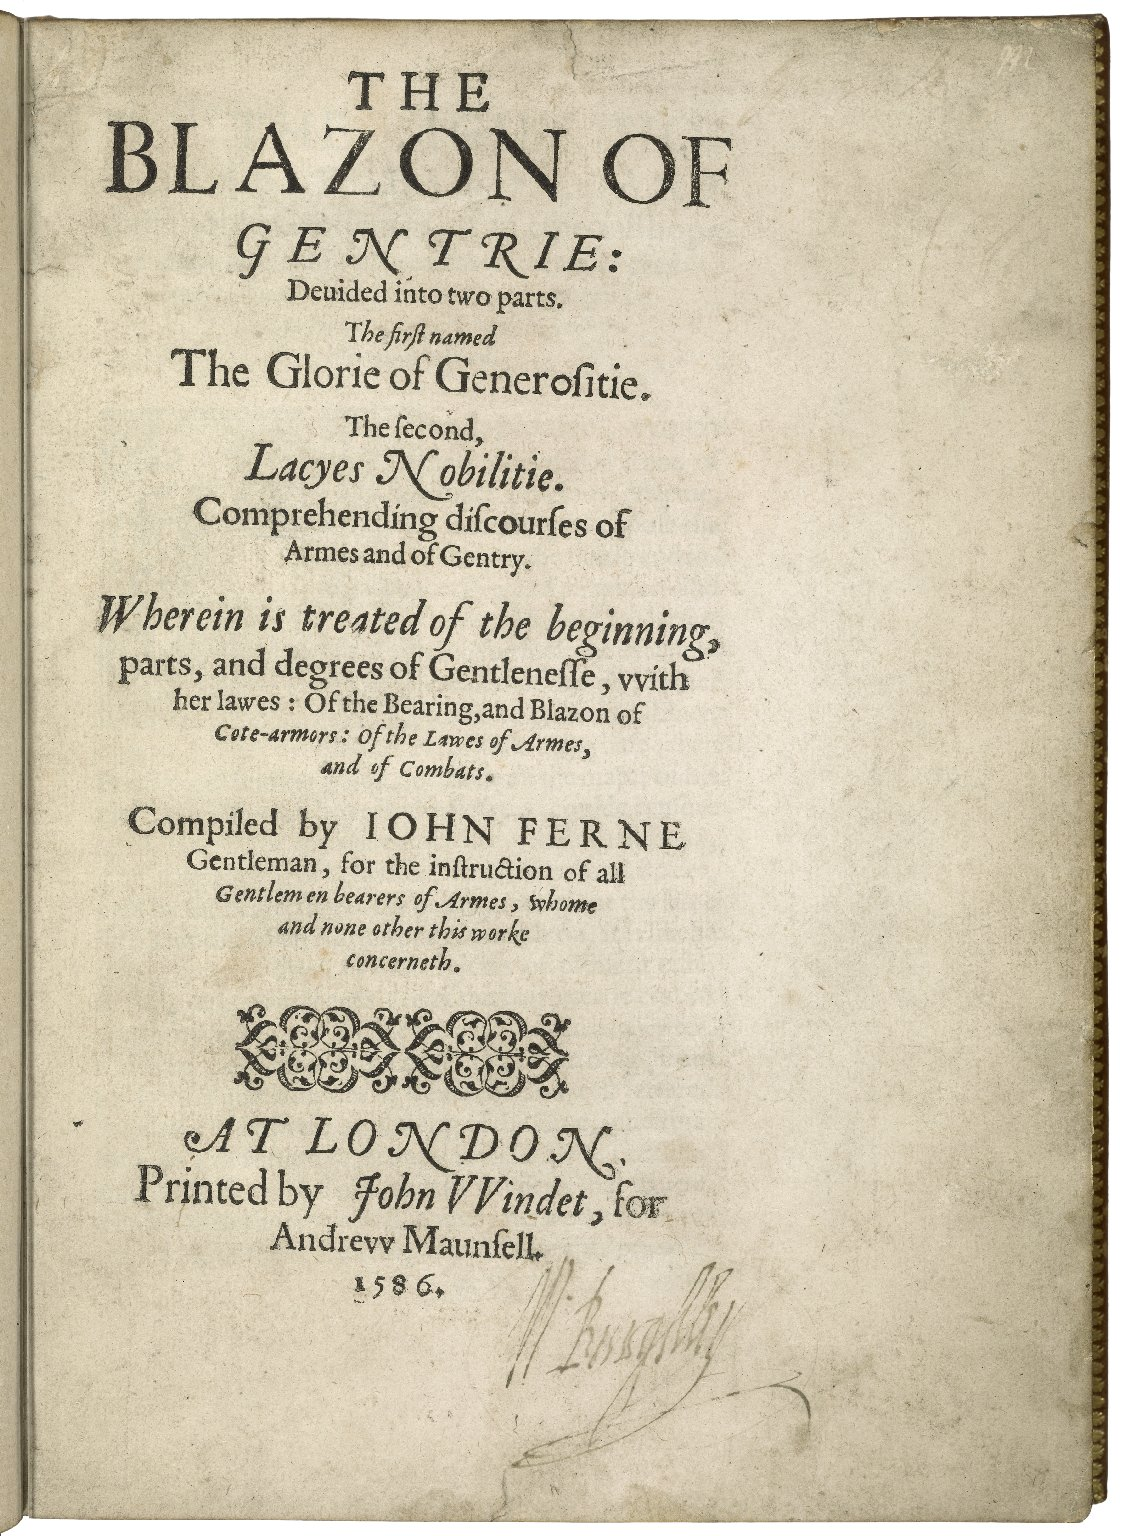 The blazon of gentrie: deuided into two parts. The first named The glorie of generositie. The second, Lacyes nobilitie. Comprehending discourses of armes and of gentry. Wherein is treated of the beginning, parts, and degrees of gentlenesse, vvith her lawes: of the bearing, and blazon of cote-armors: of the lawes of armes, and of combats. / Compiled by Iohn Ferne Gentleman, for the instruction of all gentlemen bearers of armes, whome and none other this worke concerneth.